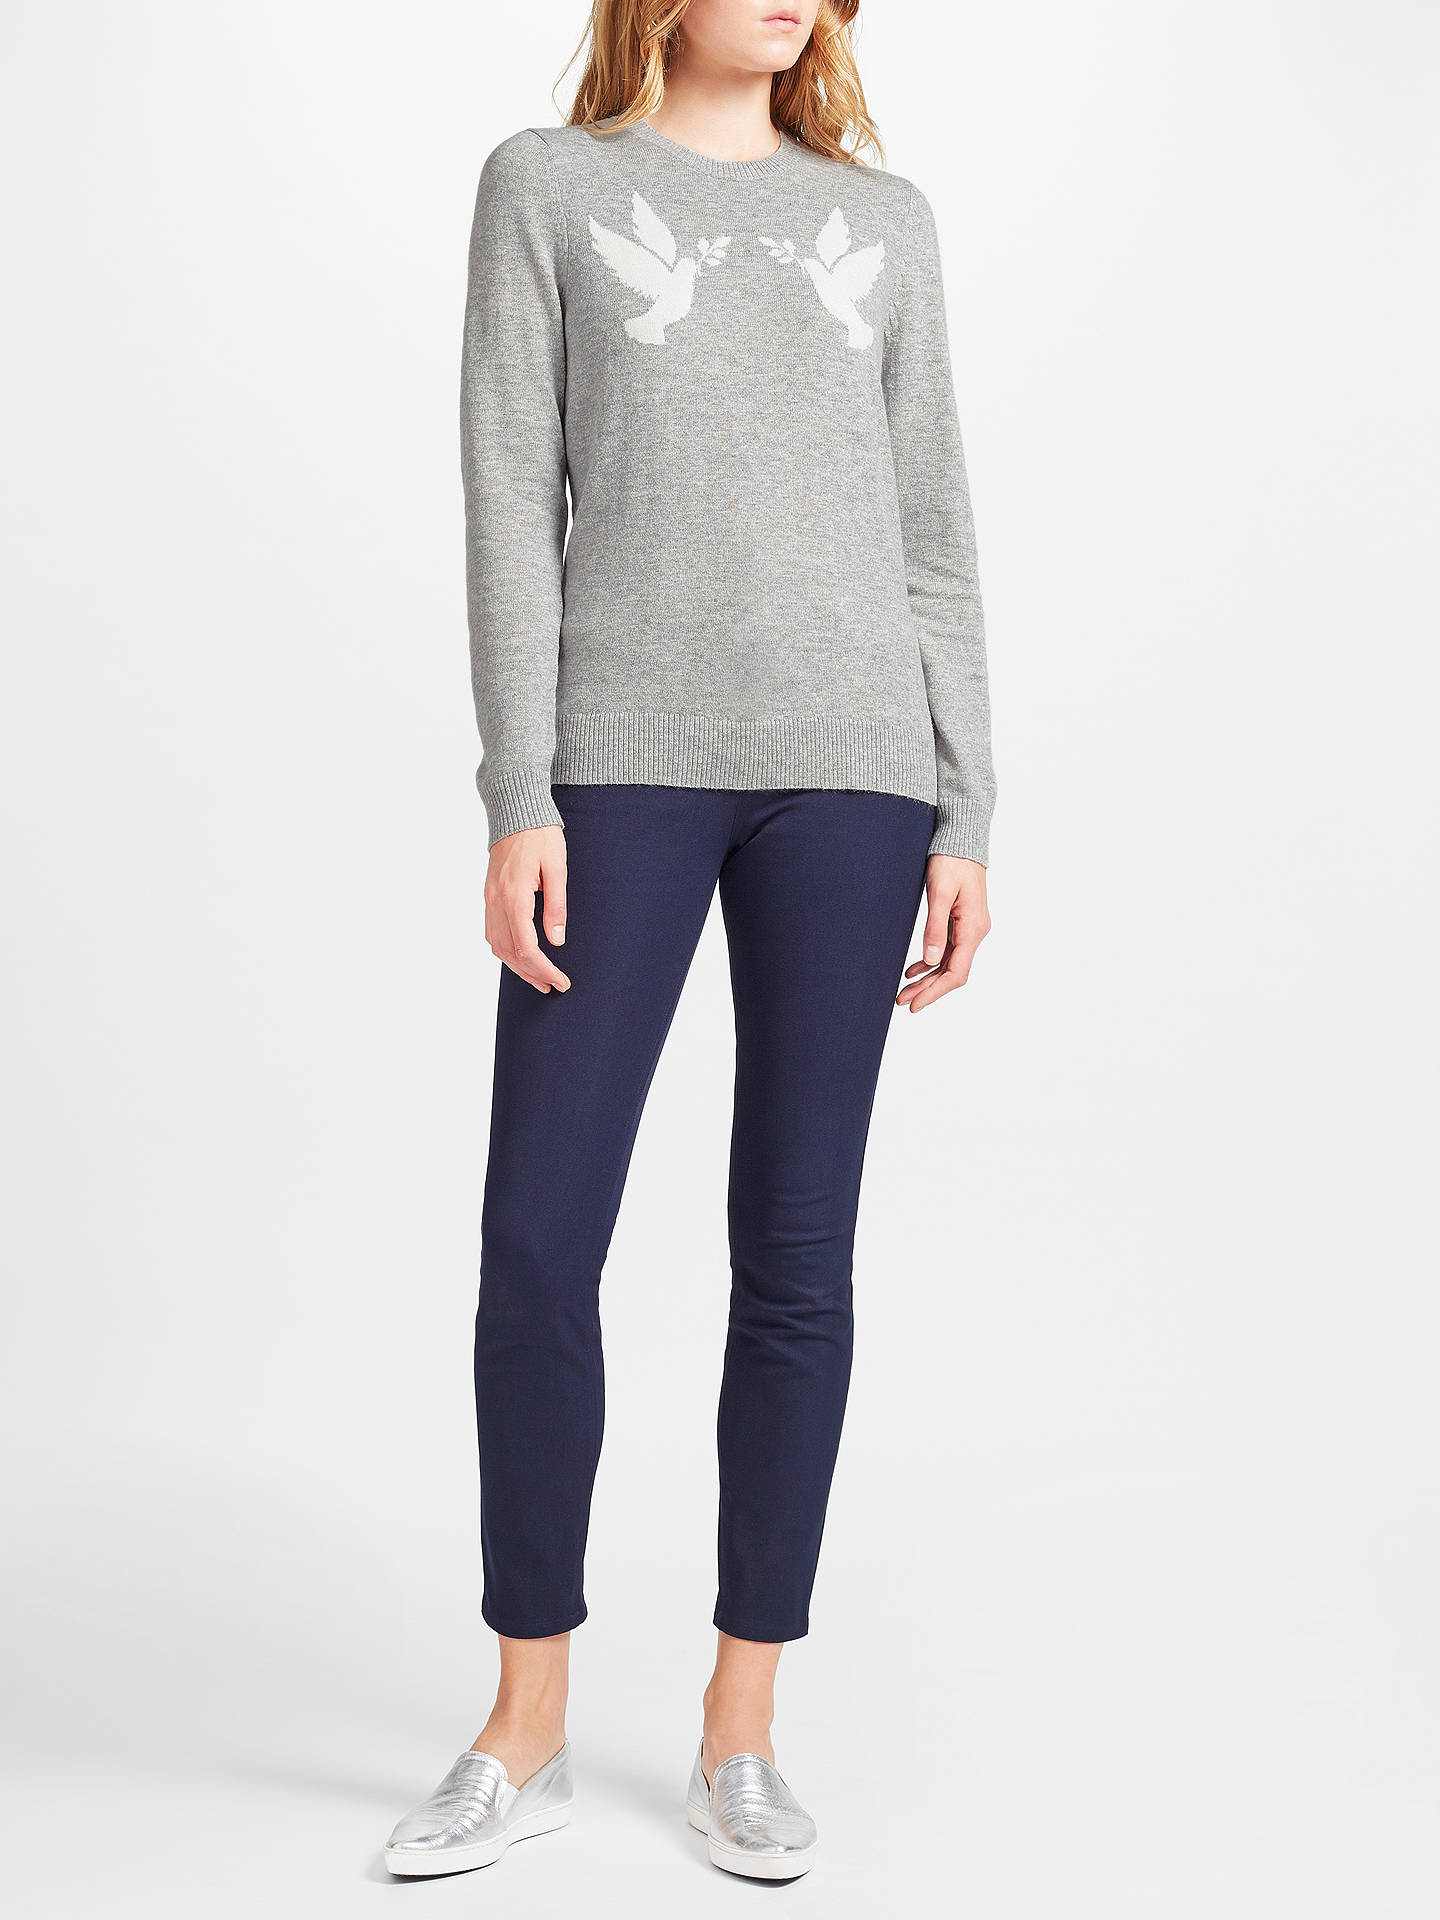 BuyCollection WEEKEND by John Lewis Dove Birds Intarsia Knitted Top, Light Grey/White, 8 Online at johnlewis.com